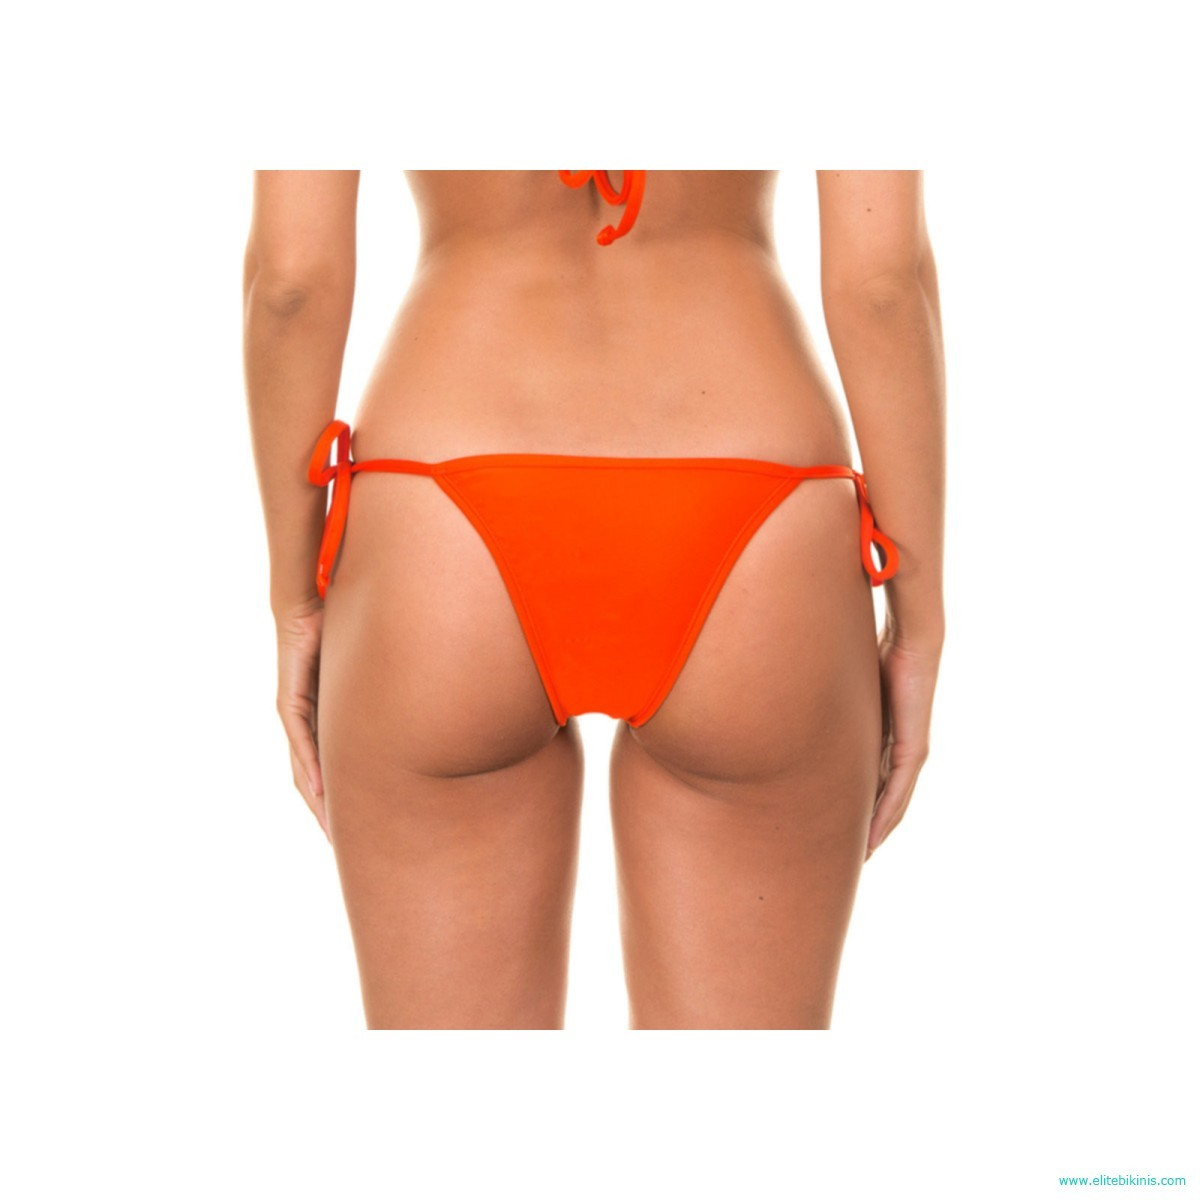 7c546206c44 This orange bikini bottom part, also called panties, King Lacinho it's a tie  side brazilian style panty . Manufactured in Brazil by Rio de Sol, ...